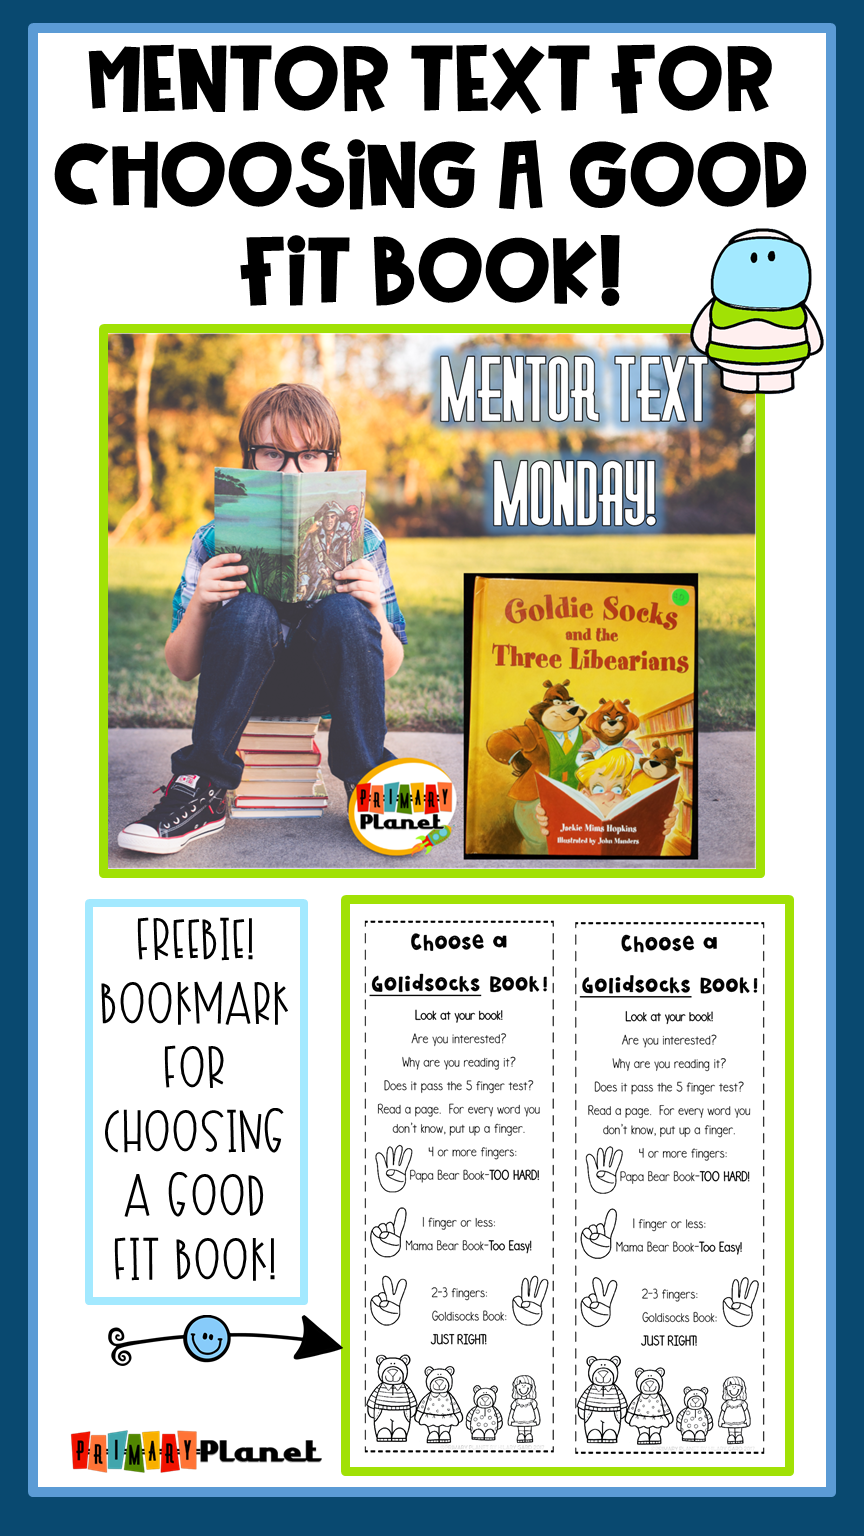 Mentor Text for Choosing a Good Fit book with a Freebie!